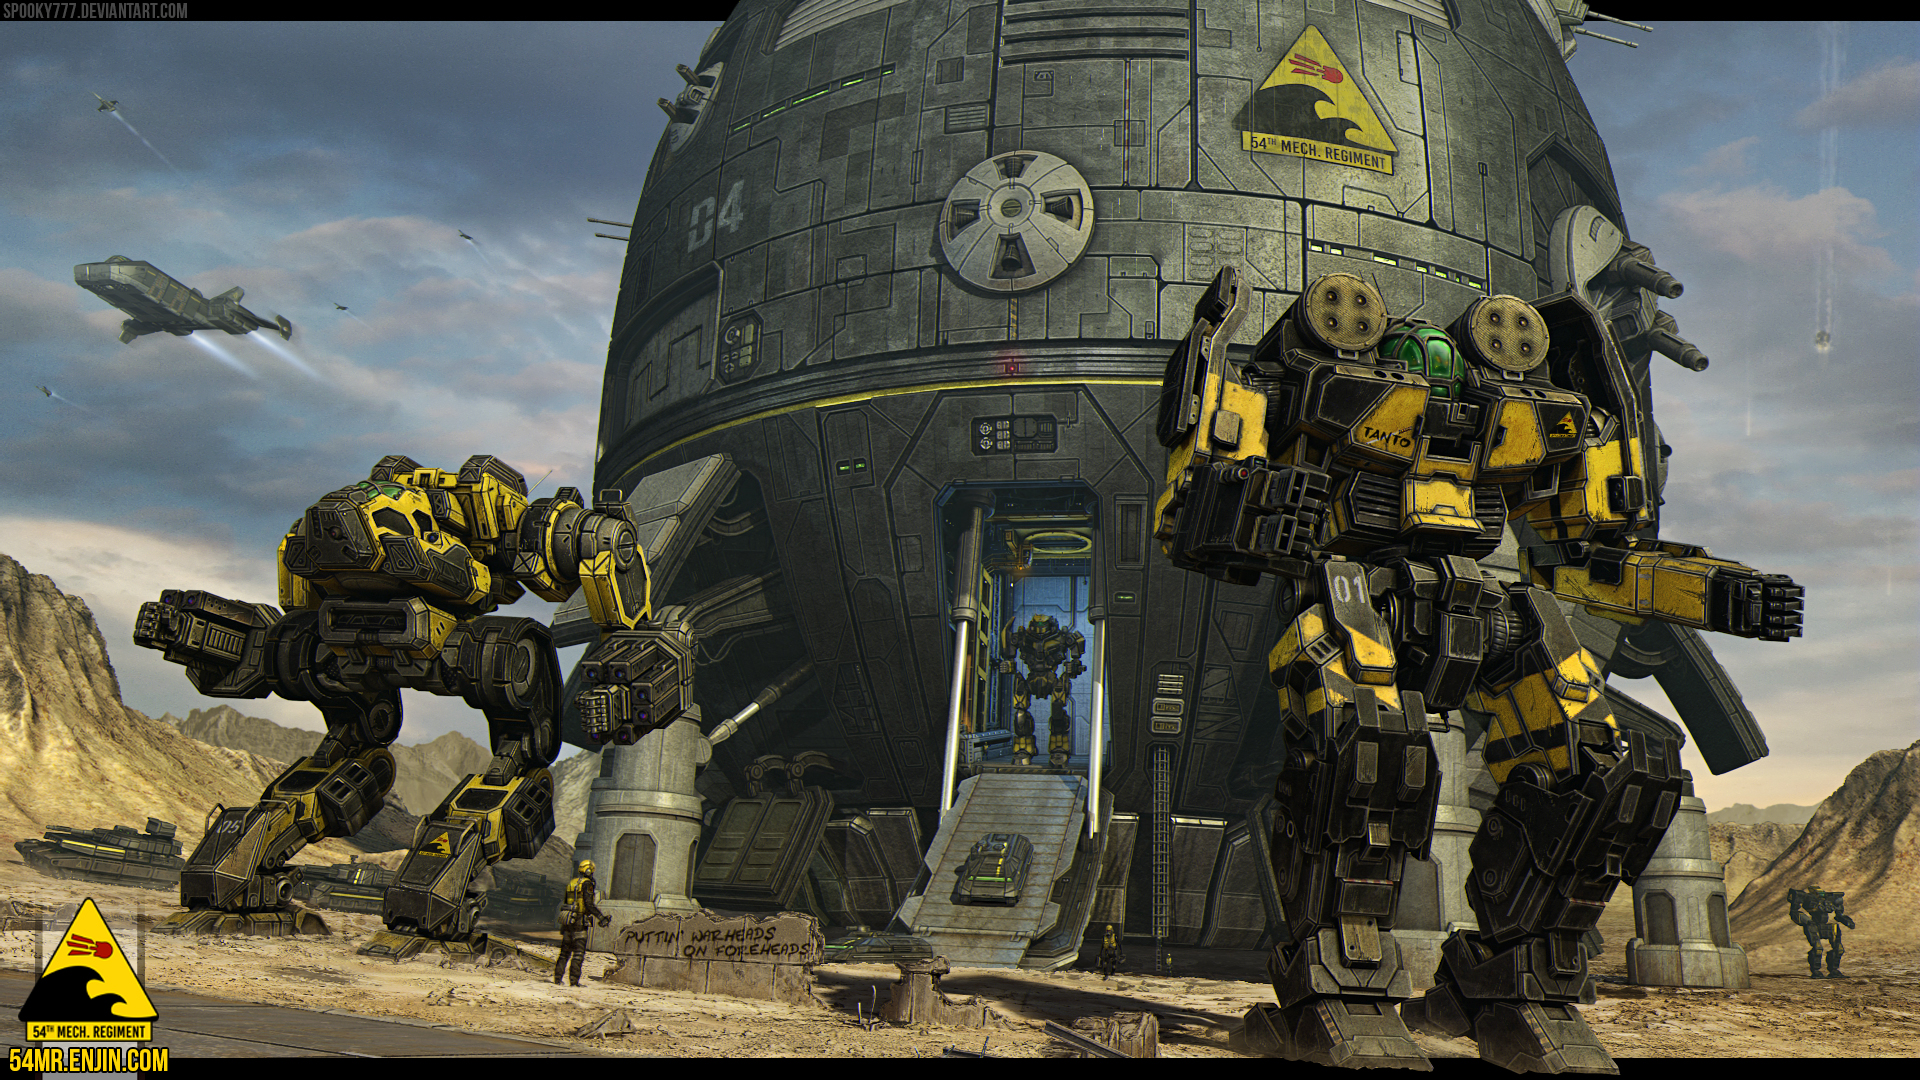 54th Mechanized Regiment by SpOoKy777